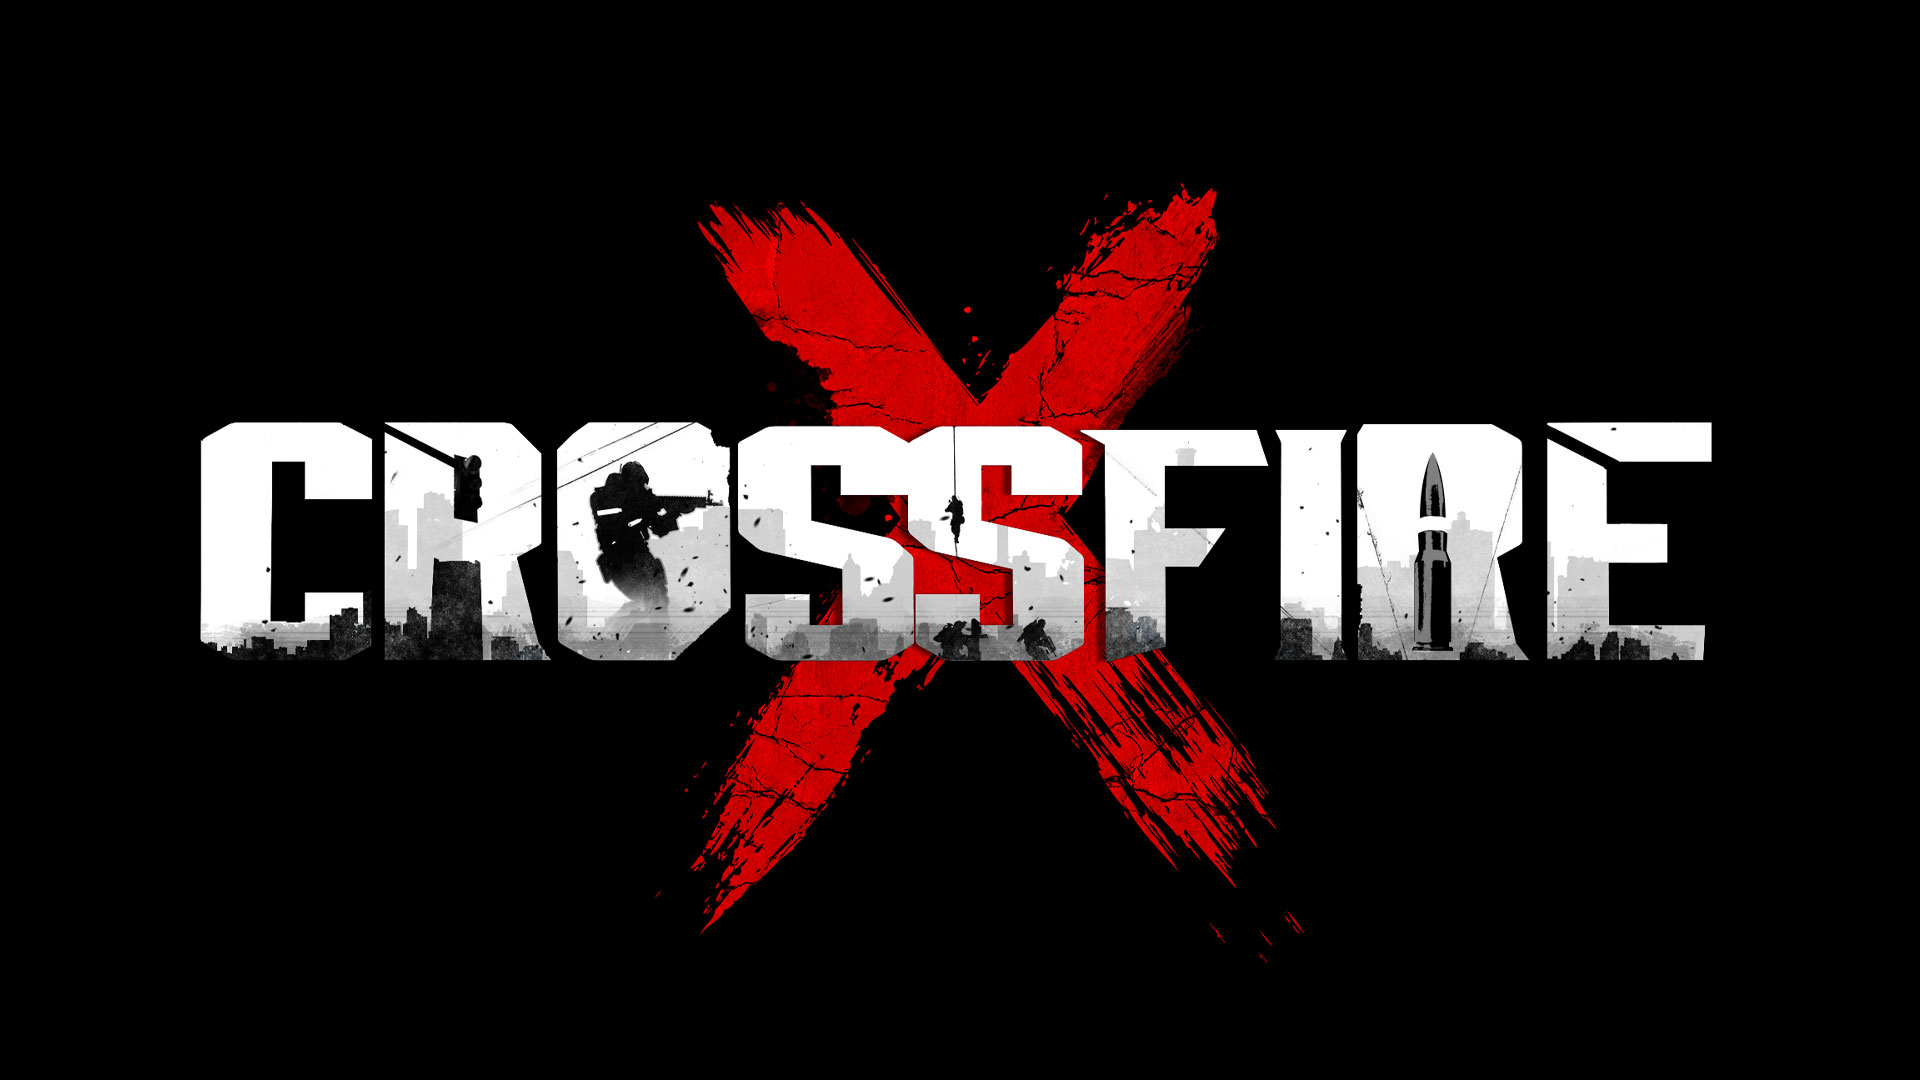 CrossfireX logo with black background